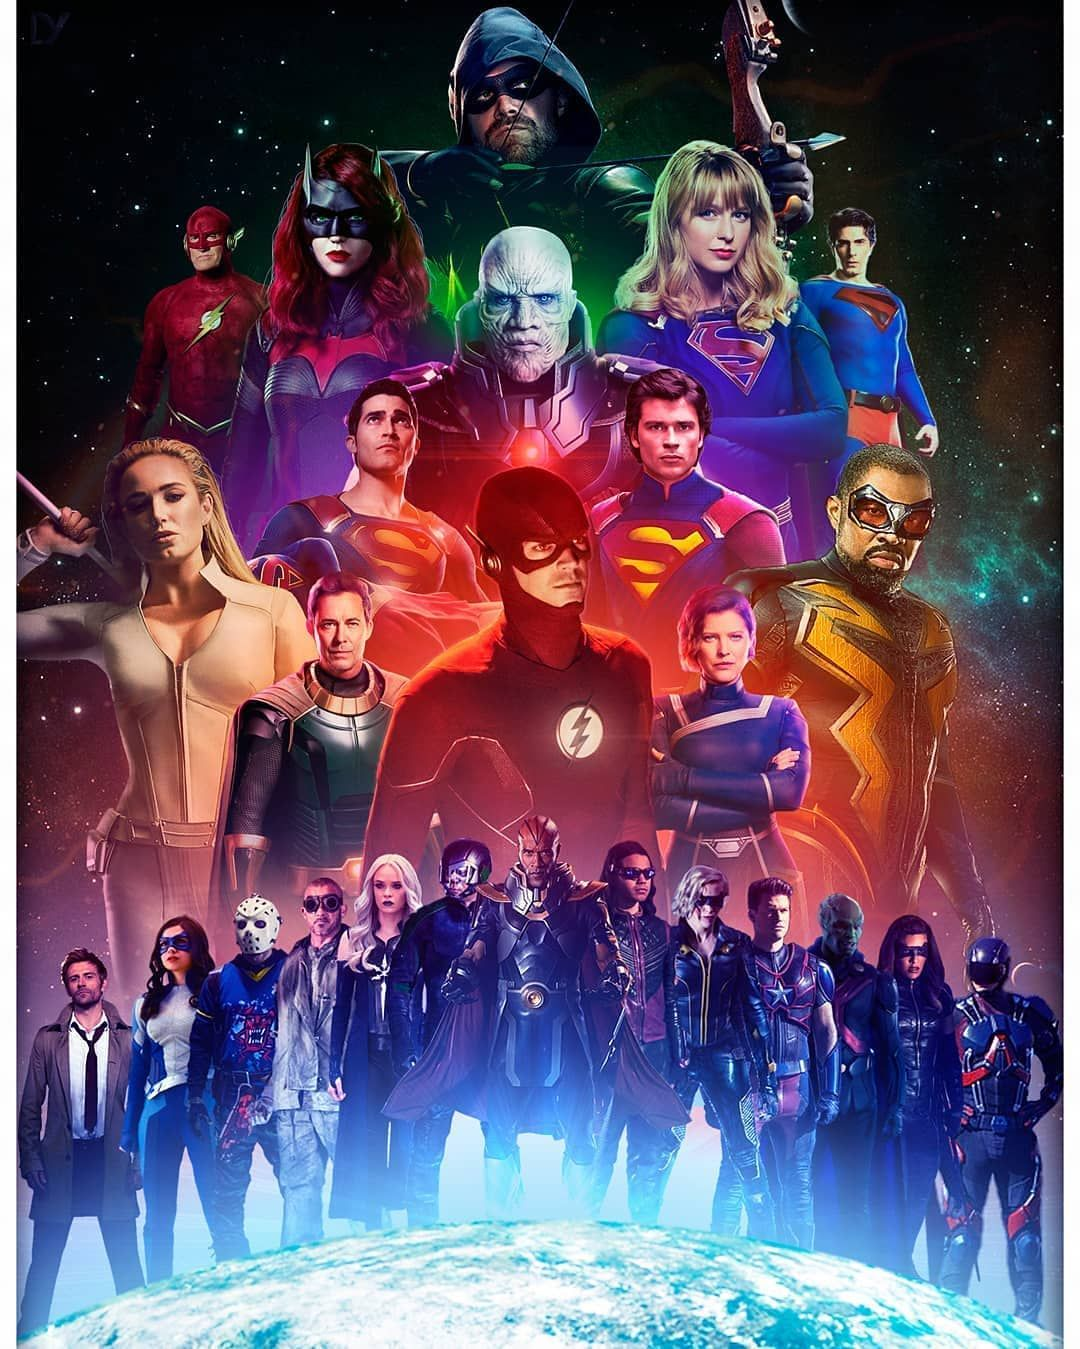 Pin By Jtatuem98 On Dc In 2020 Infinite Earths Dc Comics